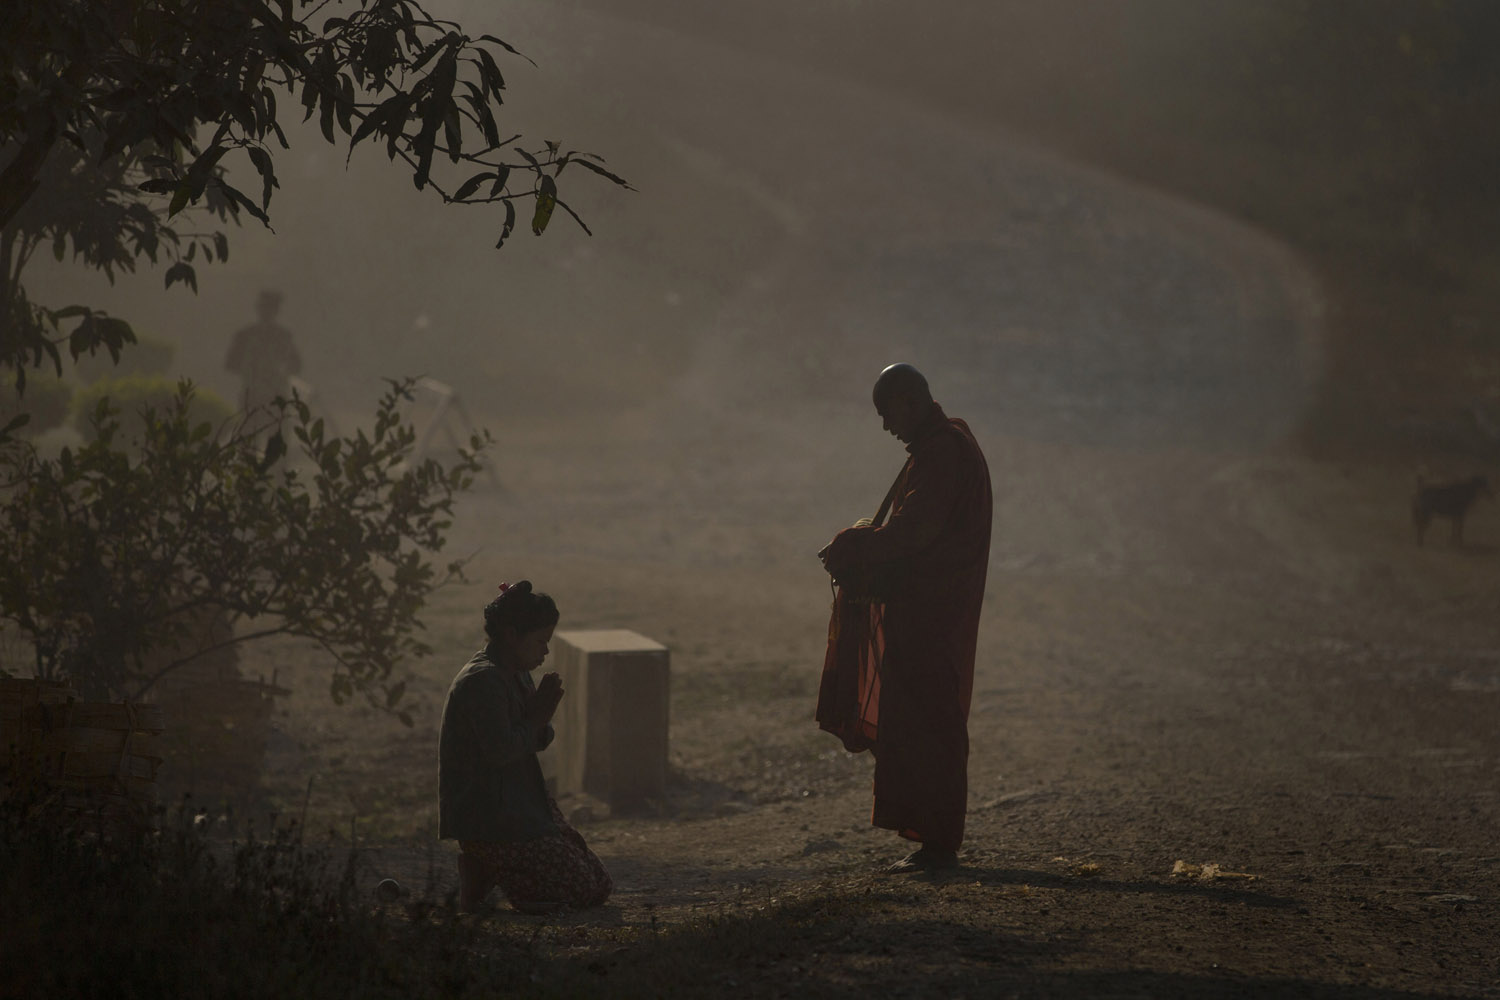 Feb. 21, 2013. A Buddhist devotee prays after offering alms to a Buddhist monk on a street corner near Mong Pan town in central Shan state, Myanmar.